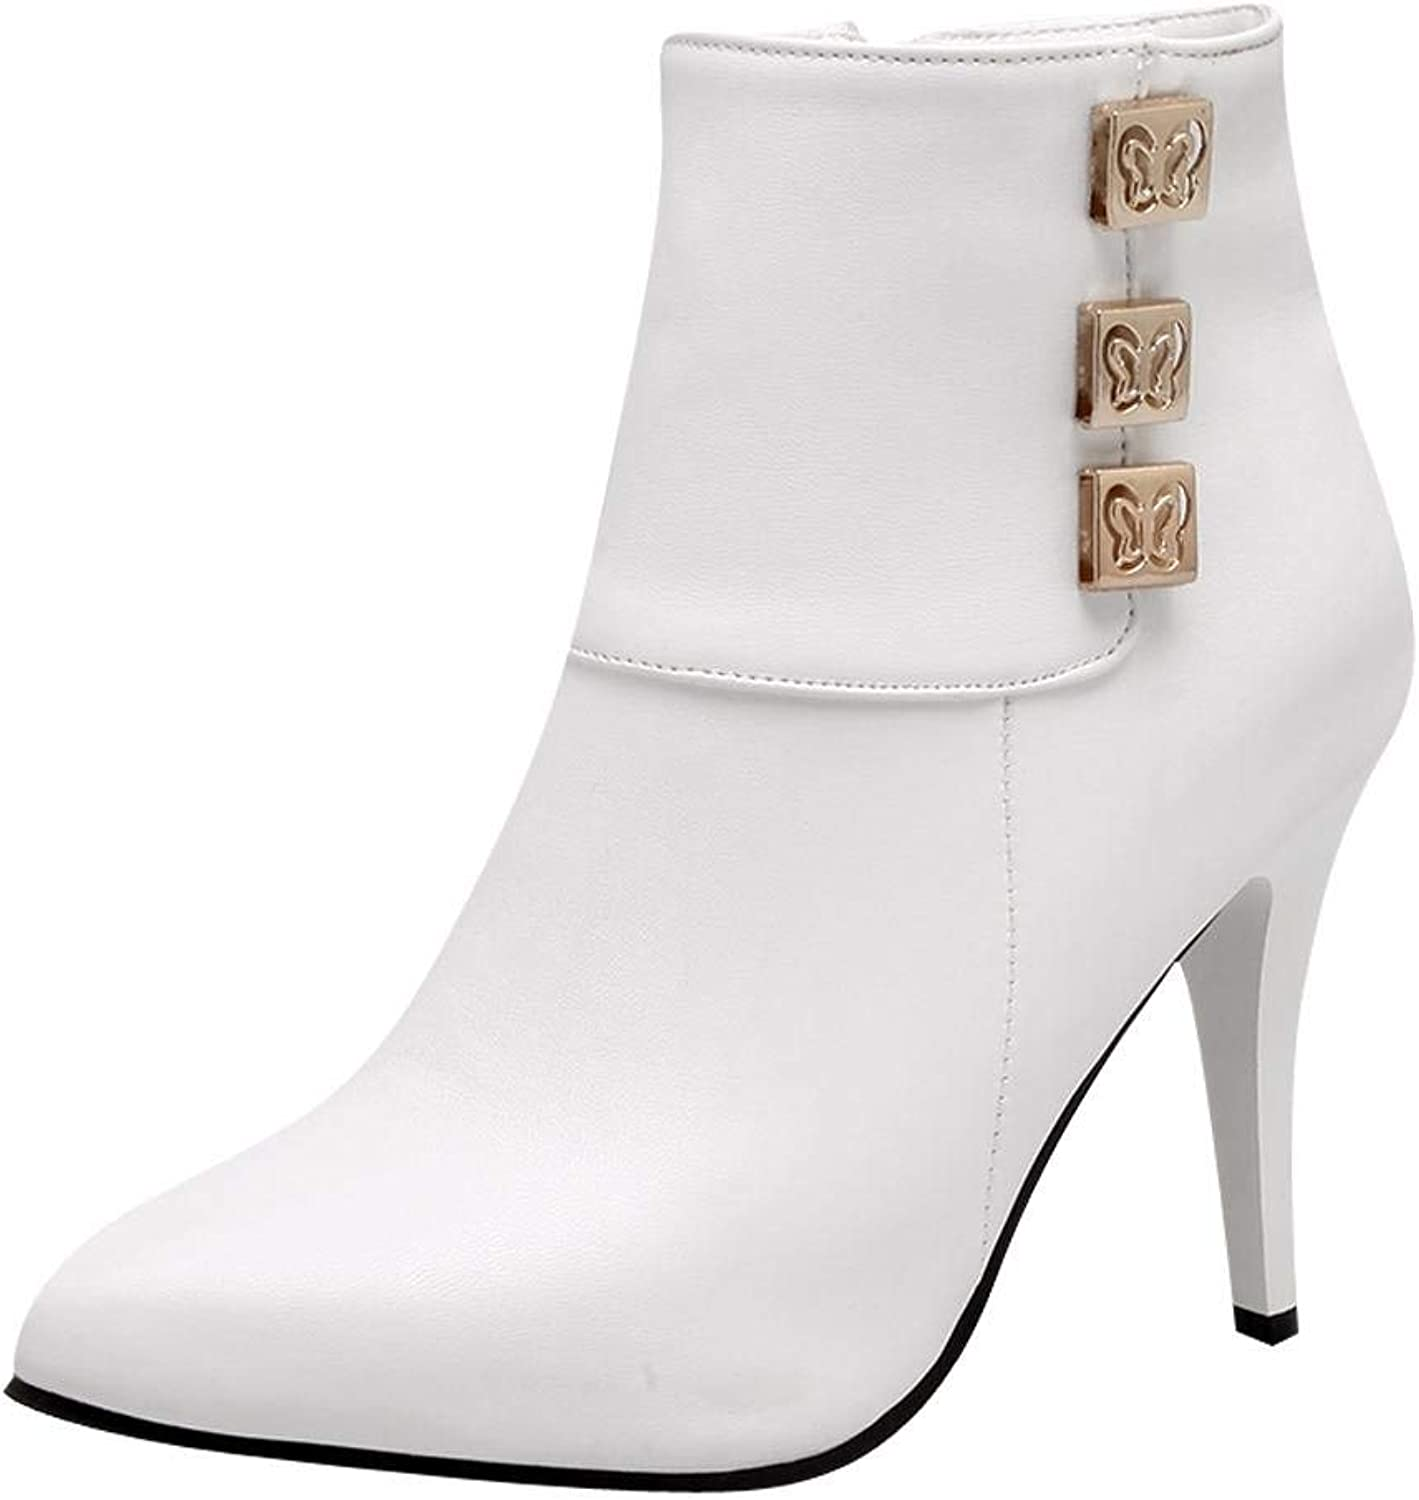 Ghapwe Women's Fashion Pointed Toe Zipper High Heel Ankle Boots White 8 M US